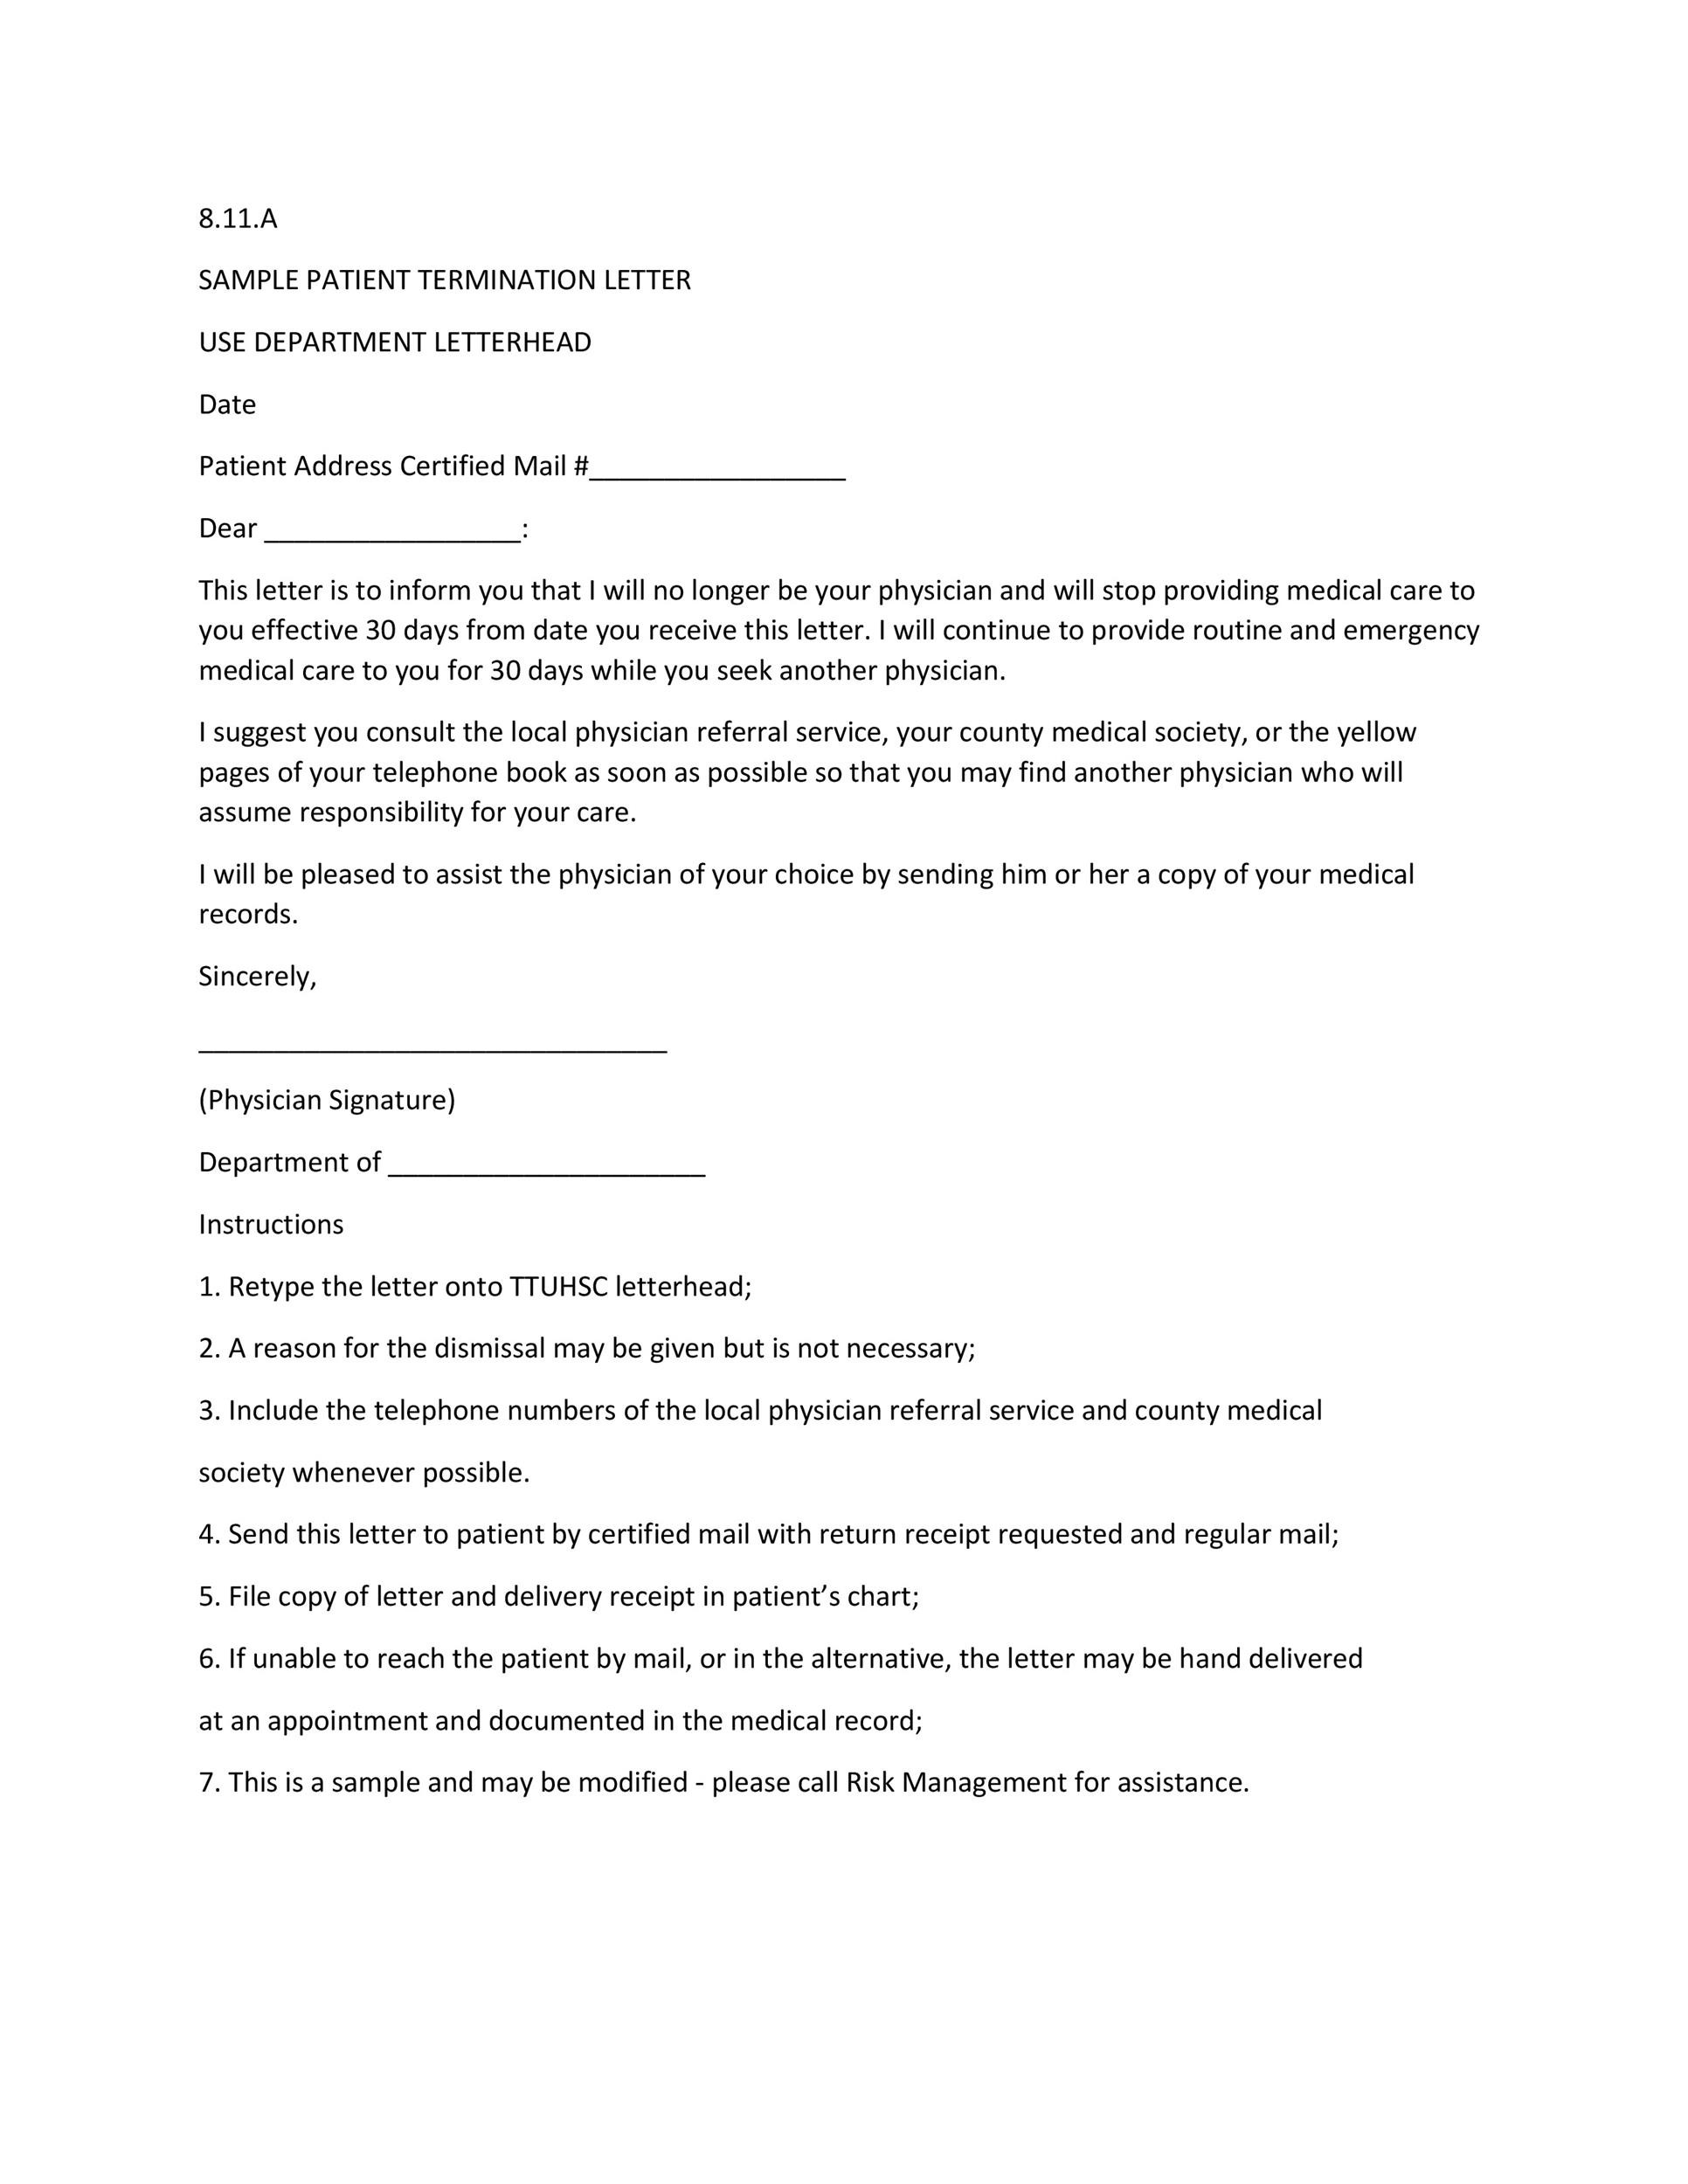 Contract Termination Letter Real Estate Contract Termination Letter